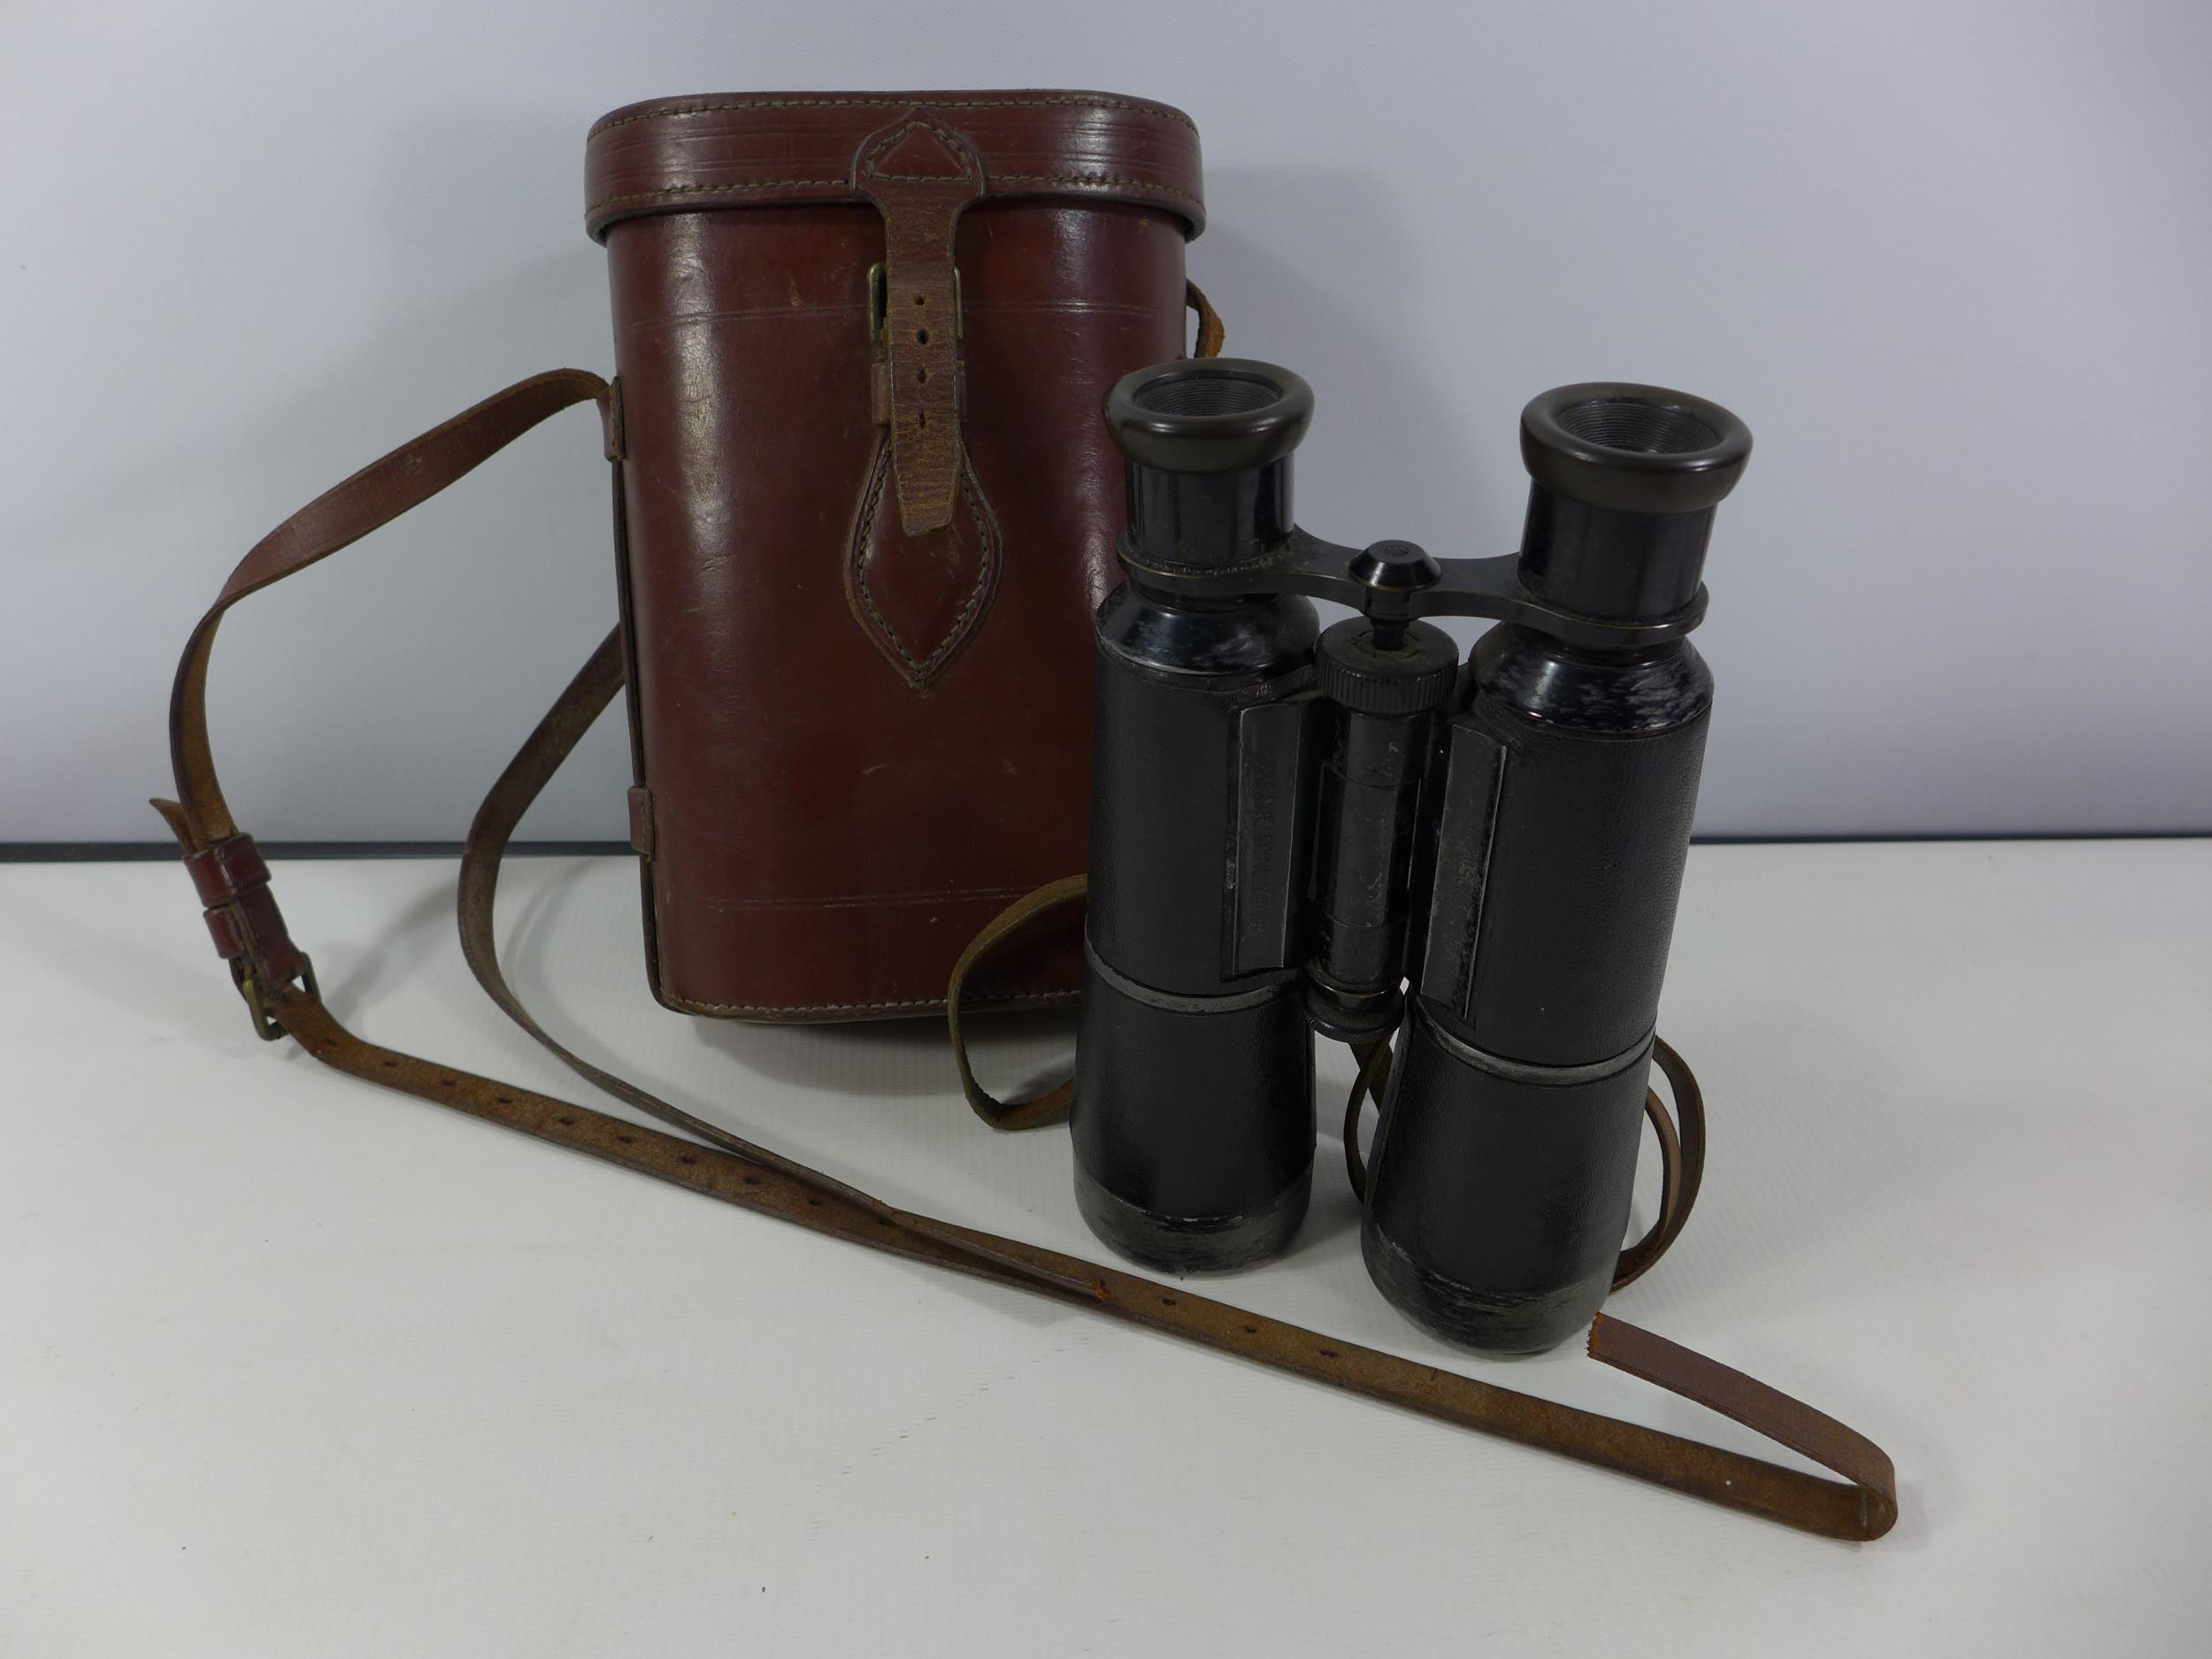 A PAIR OF IMPERIAL GERMAN HENSOLDT ARINE DIALYT 8X FERNGLAS BINOCULARS, TOGETHER WITH LEATHER CASE